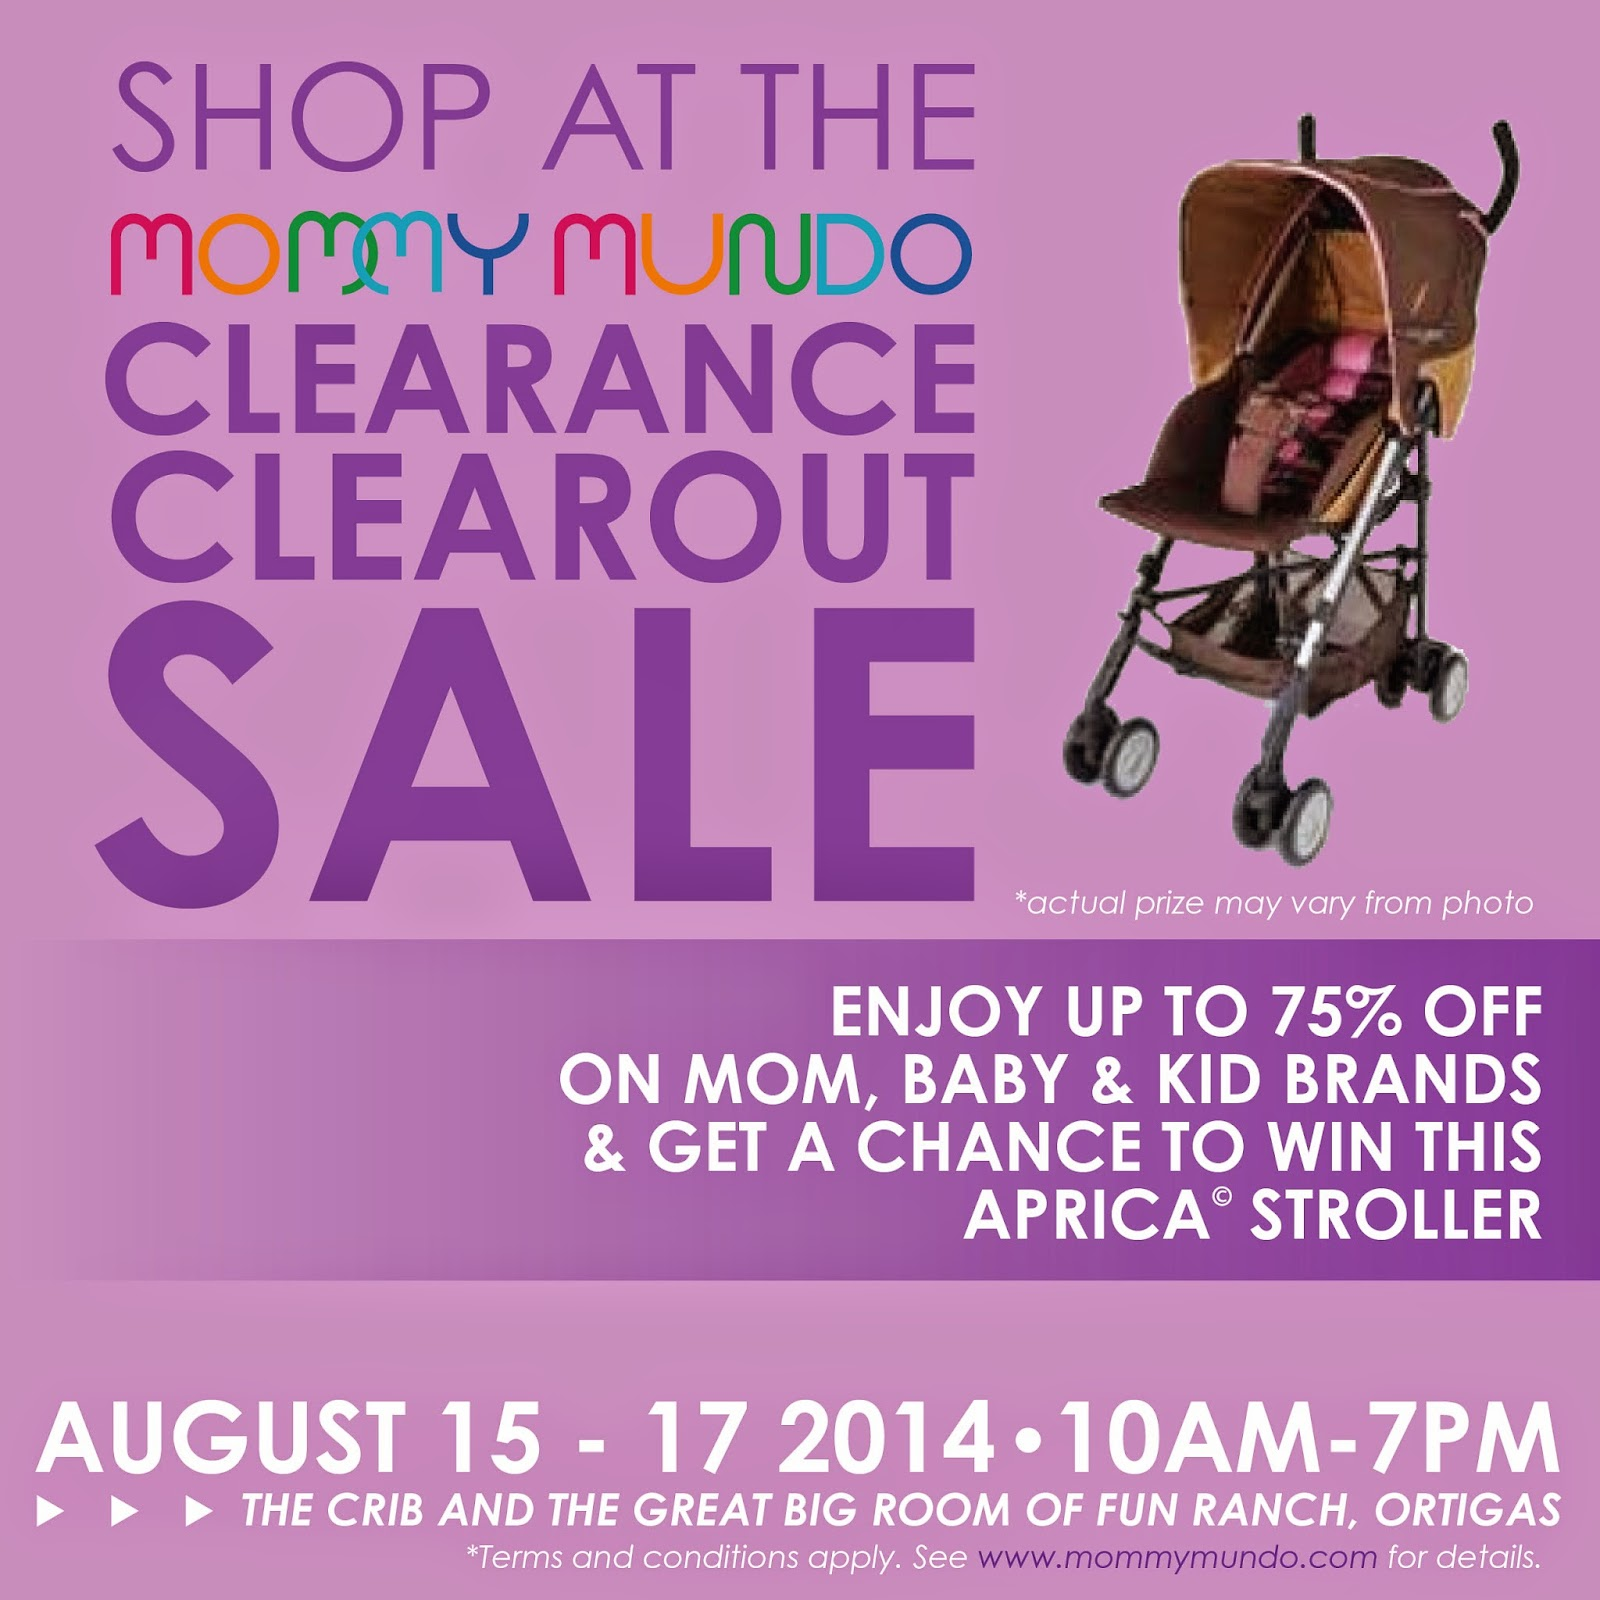 Baby crib for sale manila - Wednesday August 13 2014